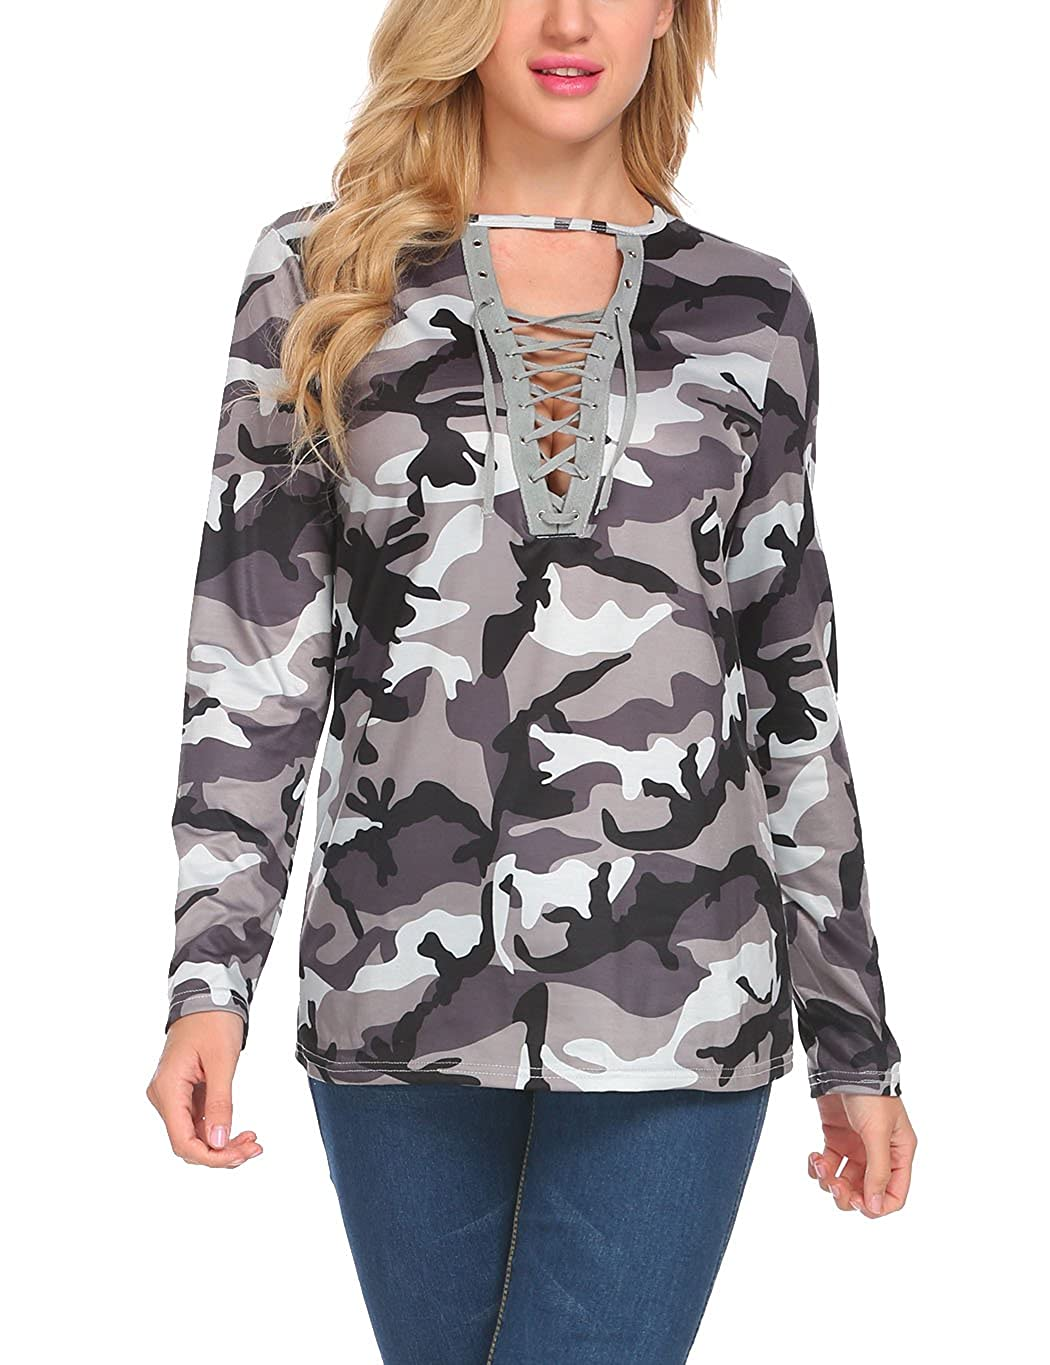 72721bad38c88c Women s Camouflage Long Sleeve Lace Up Casual Shirt Blouse Top (M ...